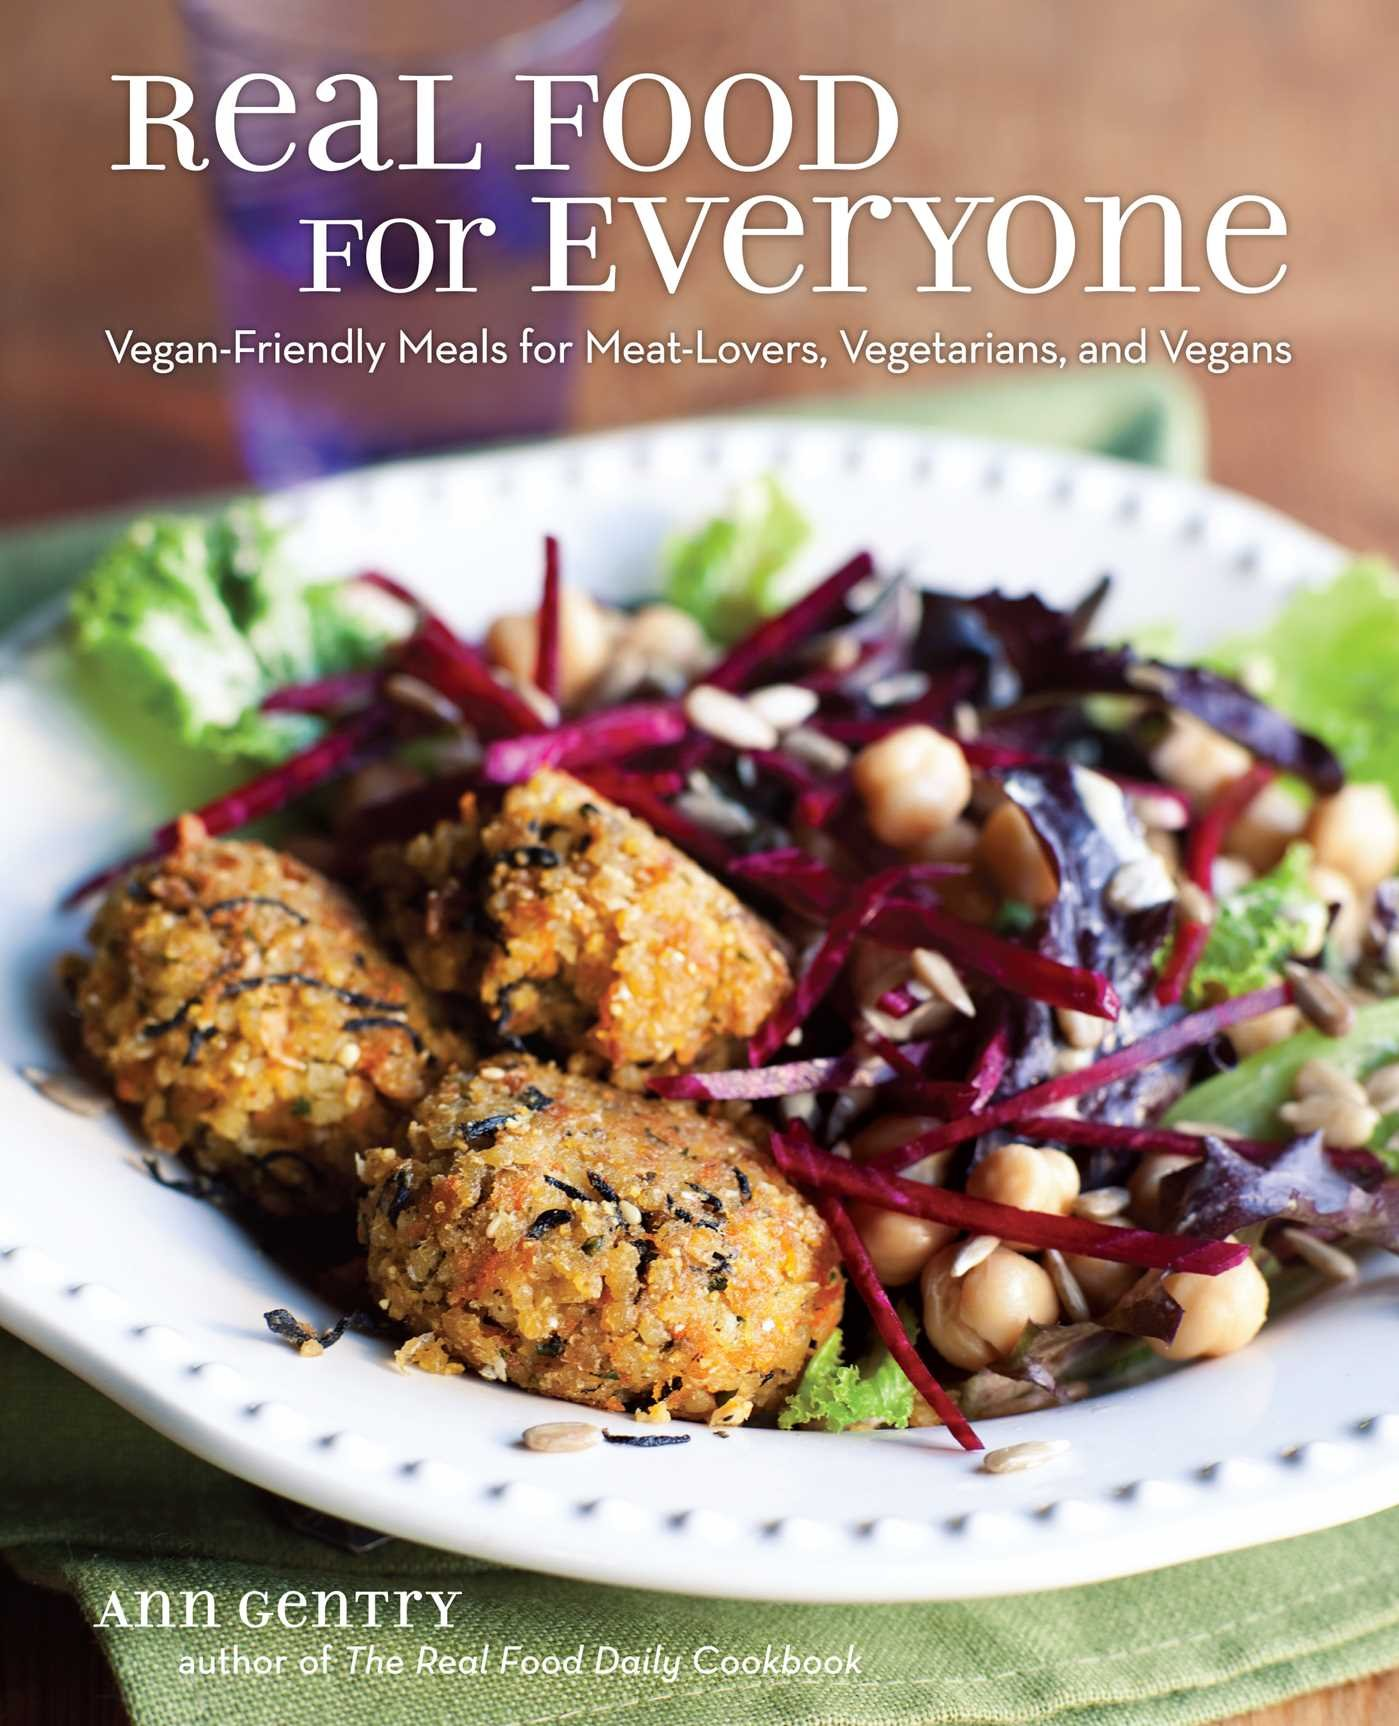 Real Food for Everyone: Vegan-Friendly Meals for Meat-Lovers, Vegetarians, and Vegans by Ann Gentry free download